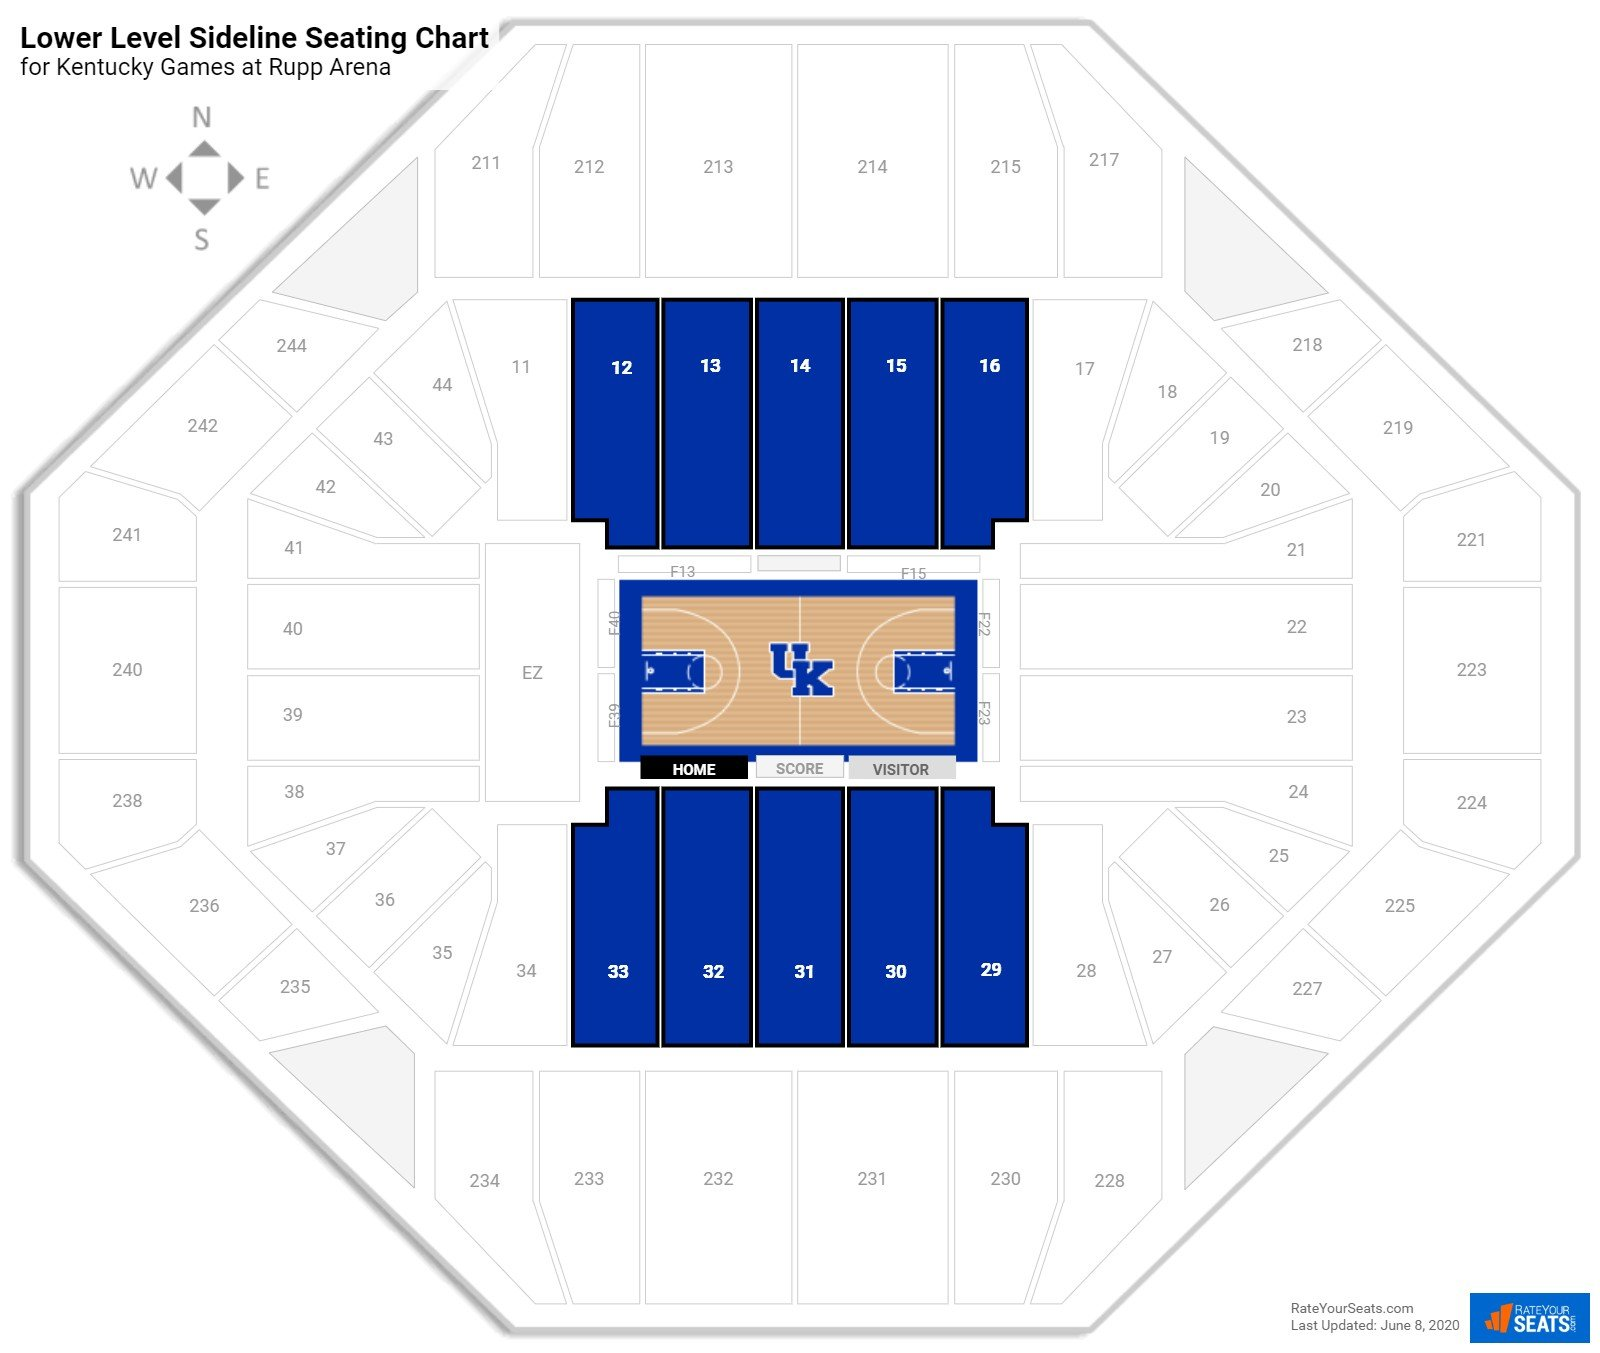 Rupp Arena Lower Level Sideline Seating Chart